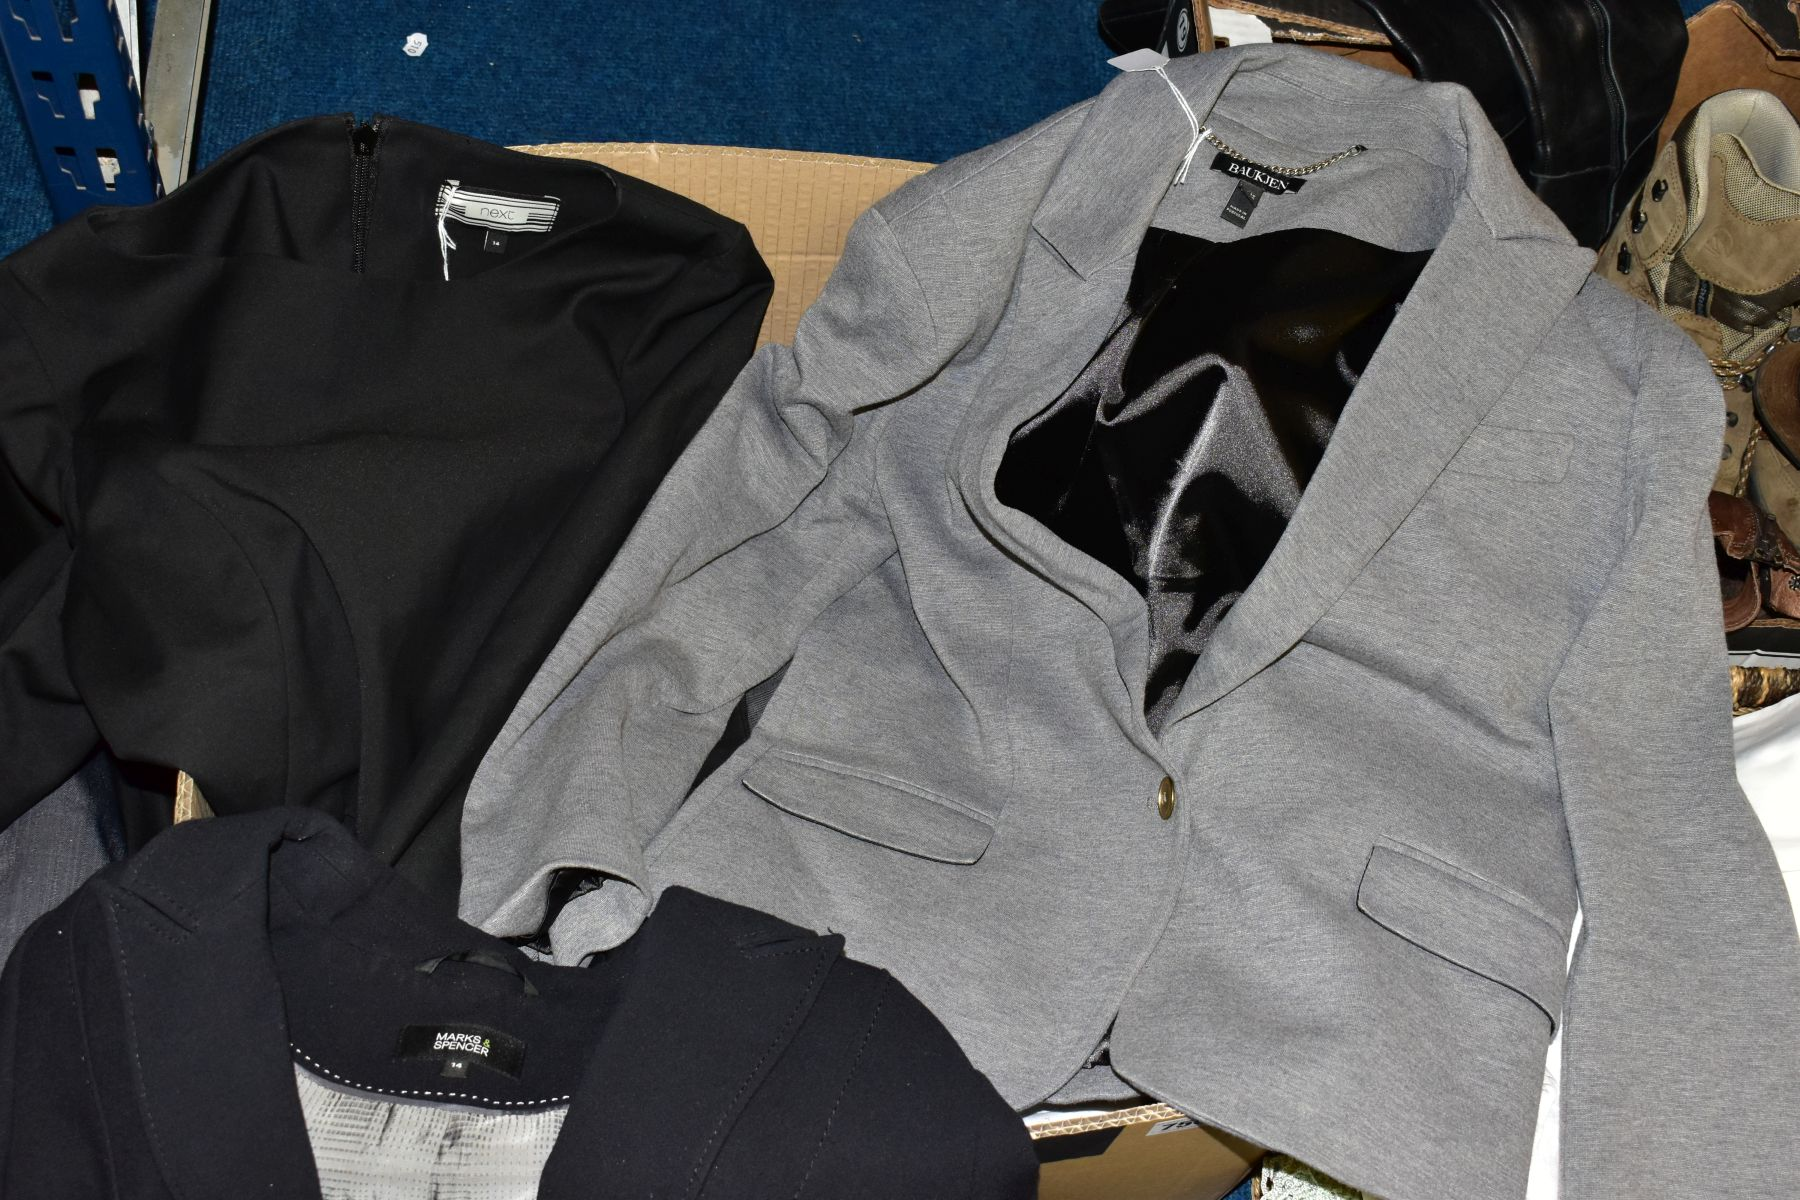 LADIES CLOTHING ETC, to include Planet trouser suit and jacket and skirt both size 12, Zara Basic - Image 7 of 9